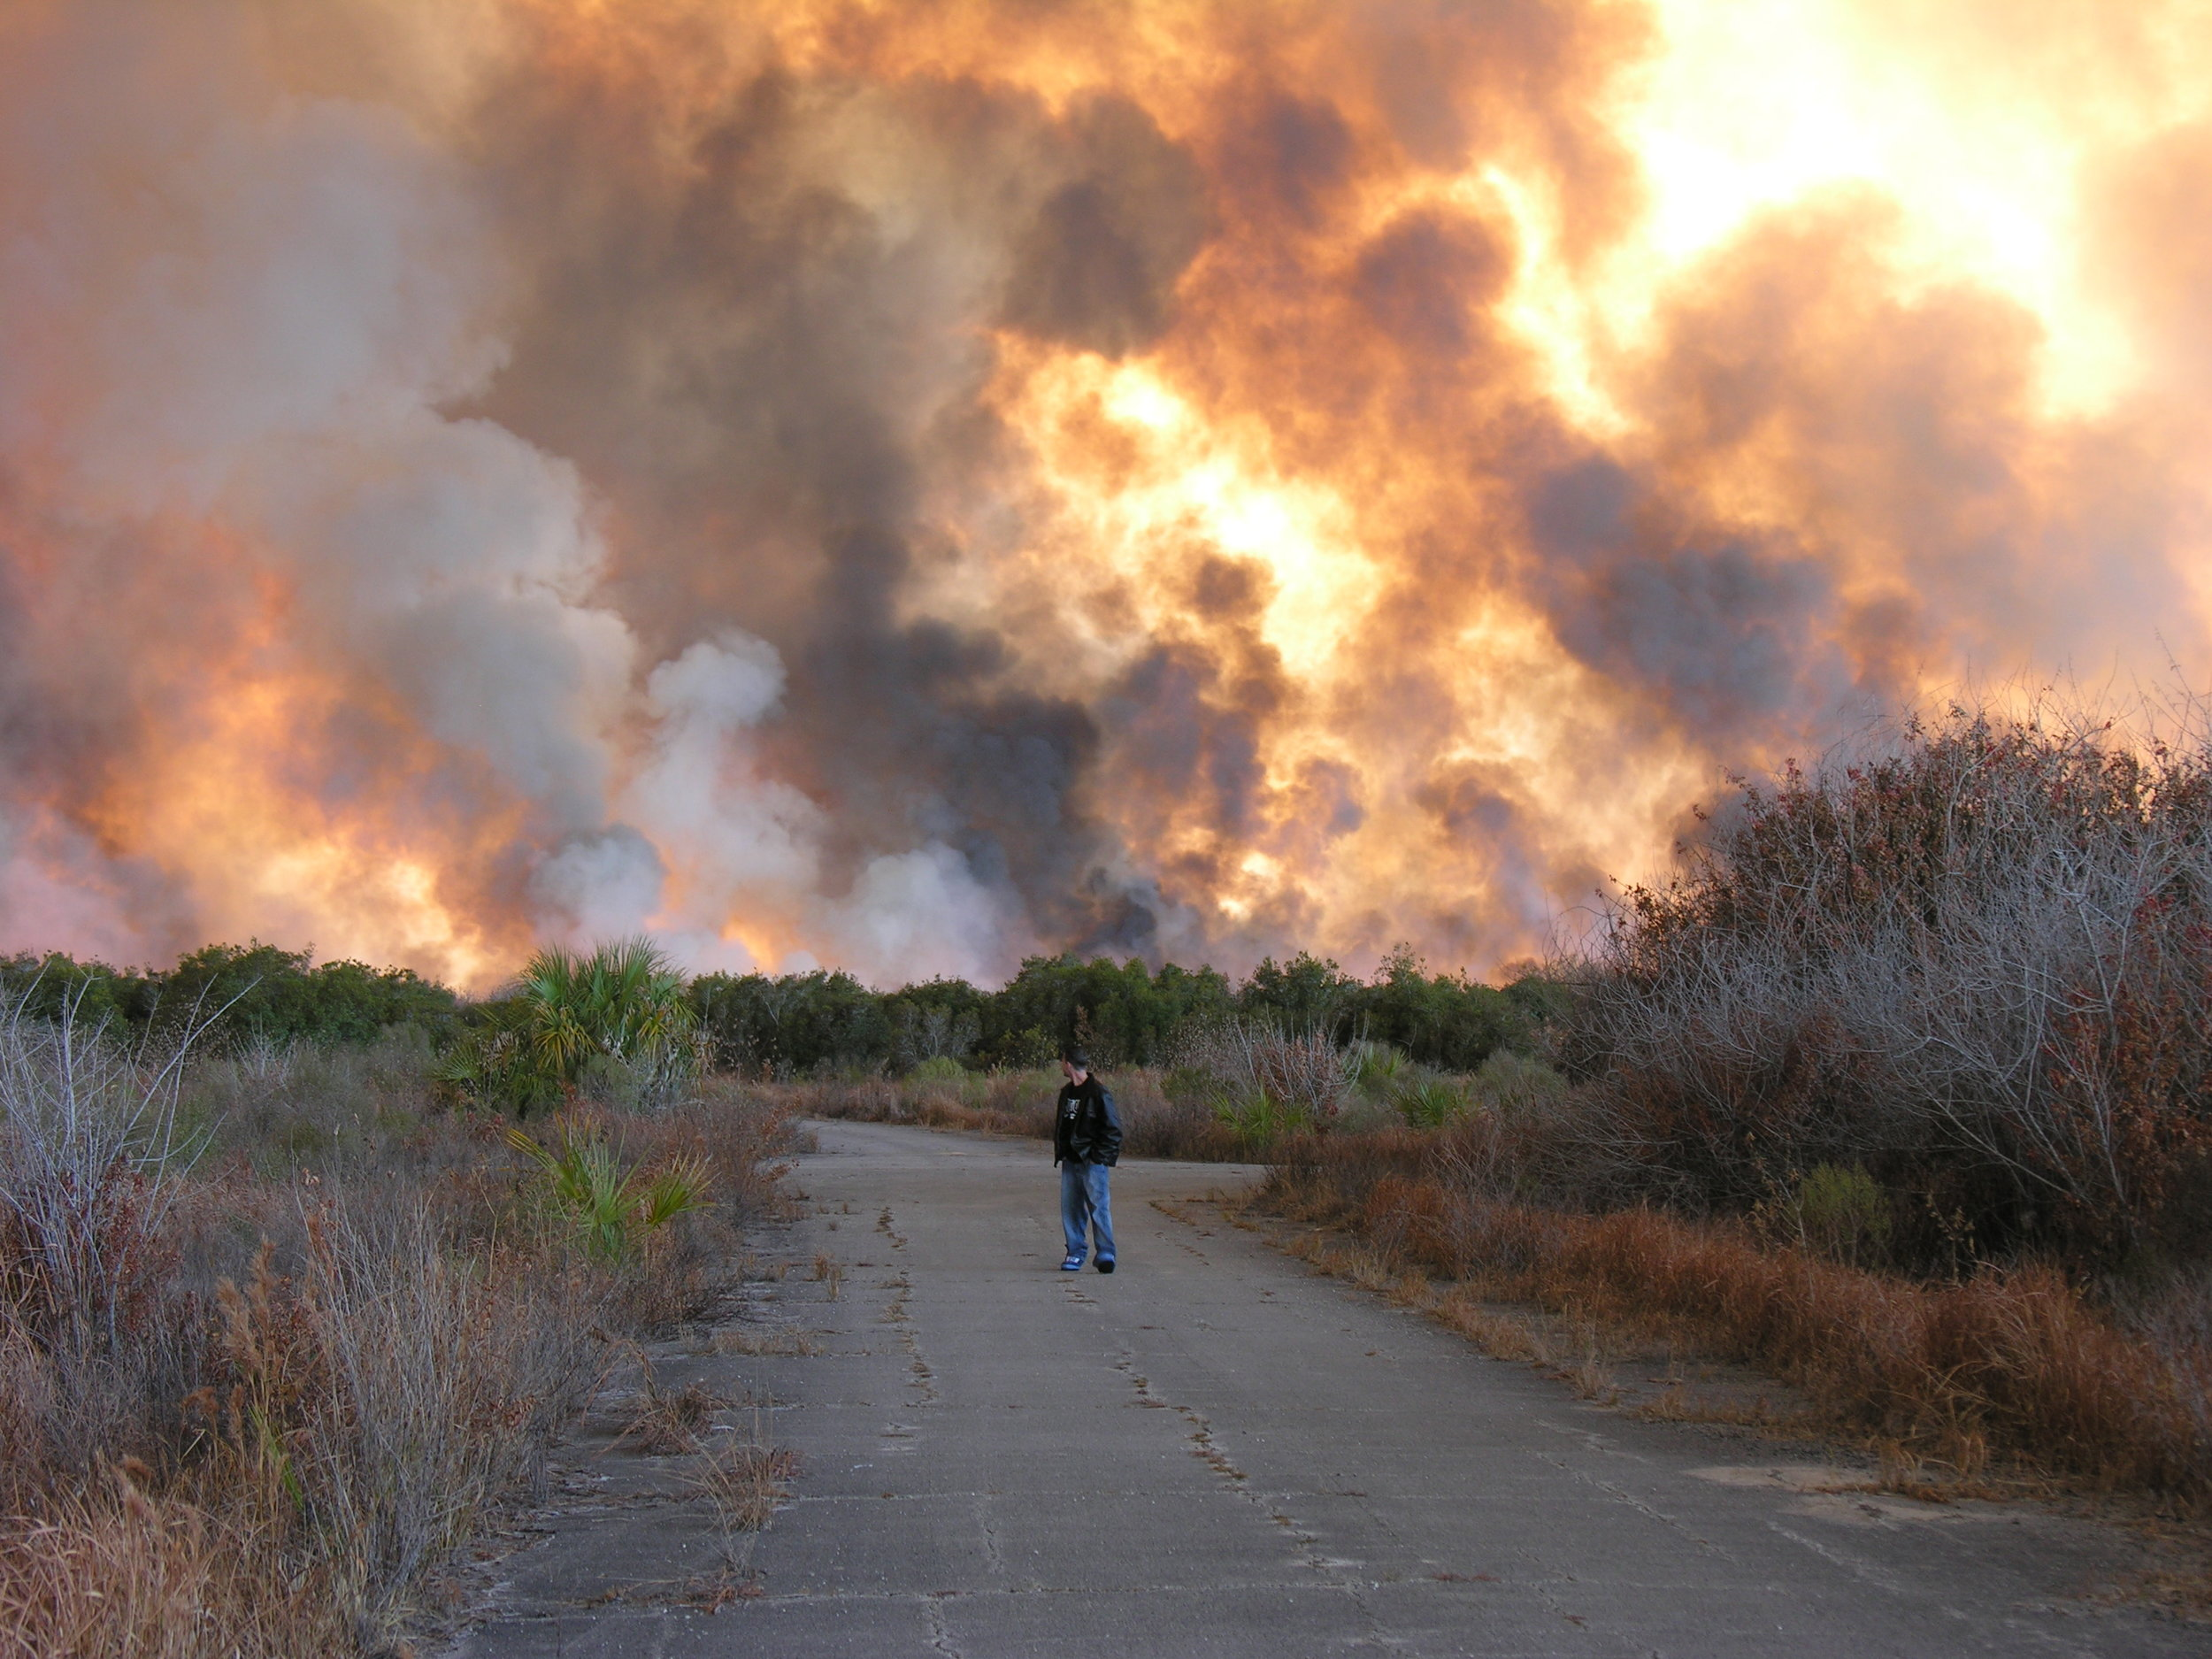 Fire in the Compound, Palm Bay. (Source: Wikimedia Commons)